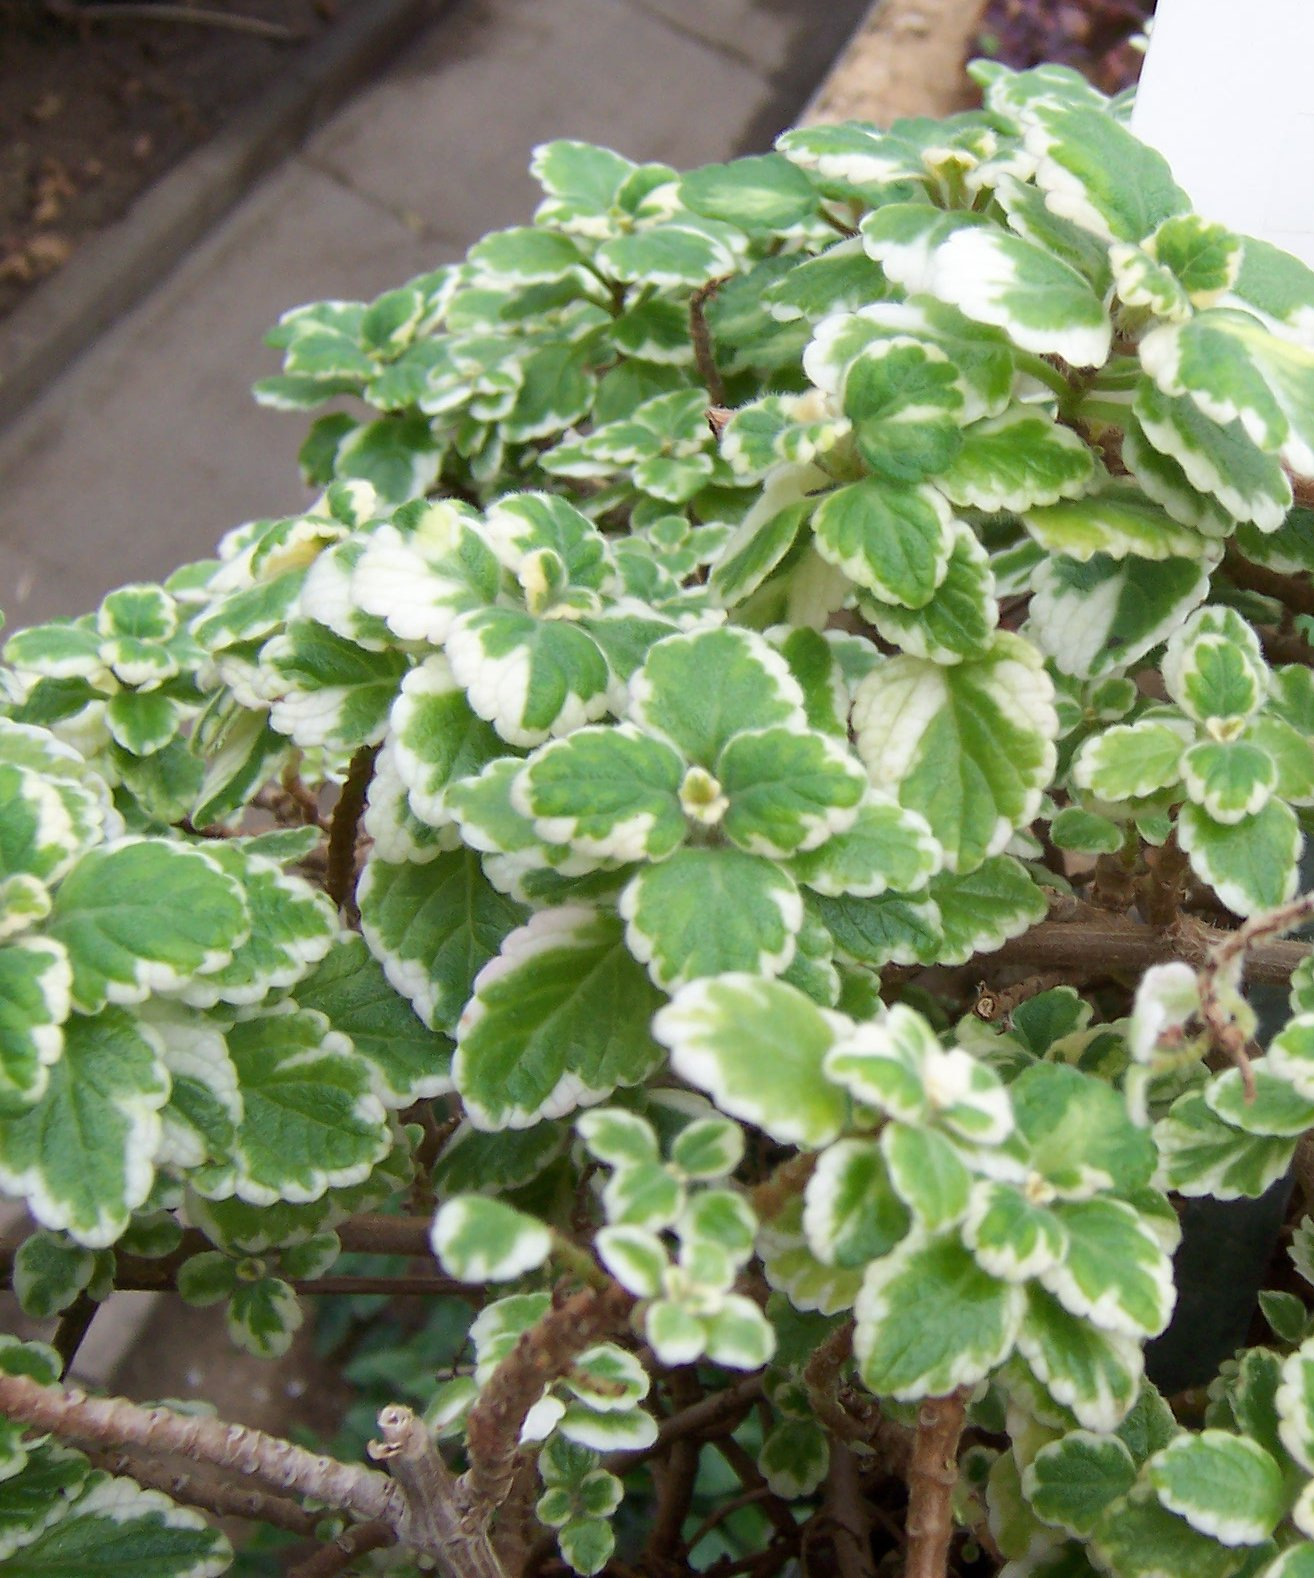 Potential Use of Plectranthus amboinicus in the Treatment